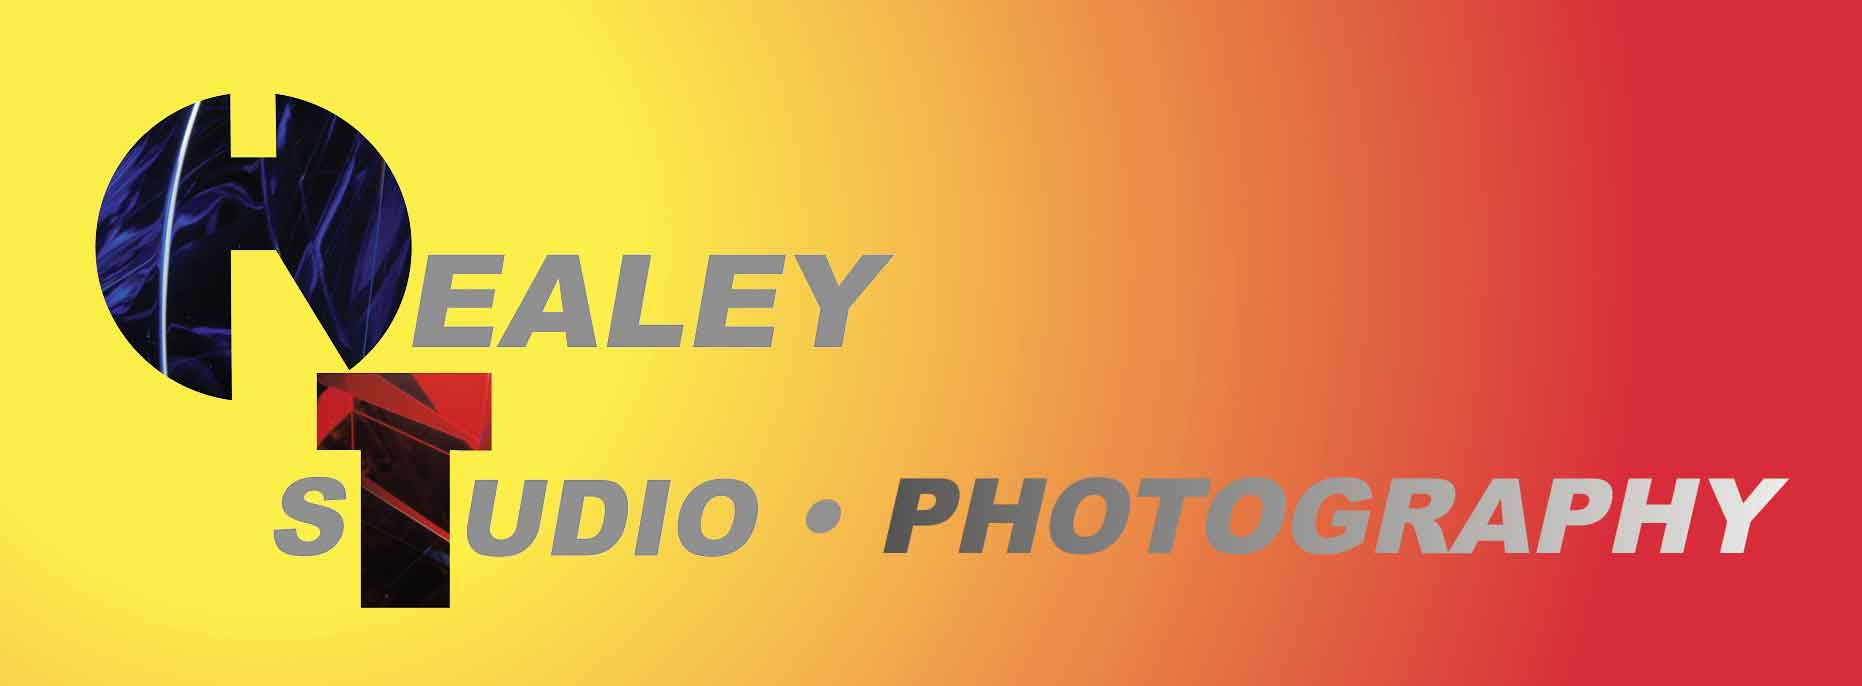 Healey Studio Photography